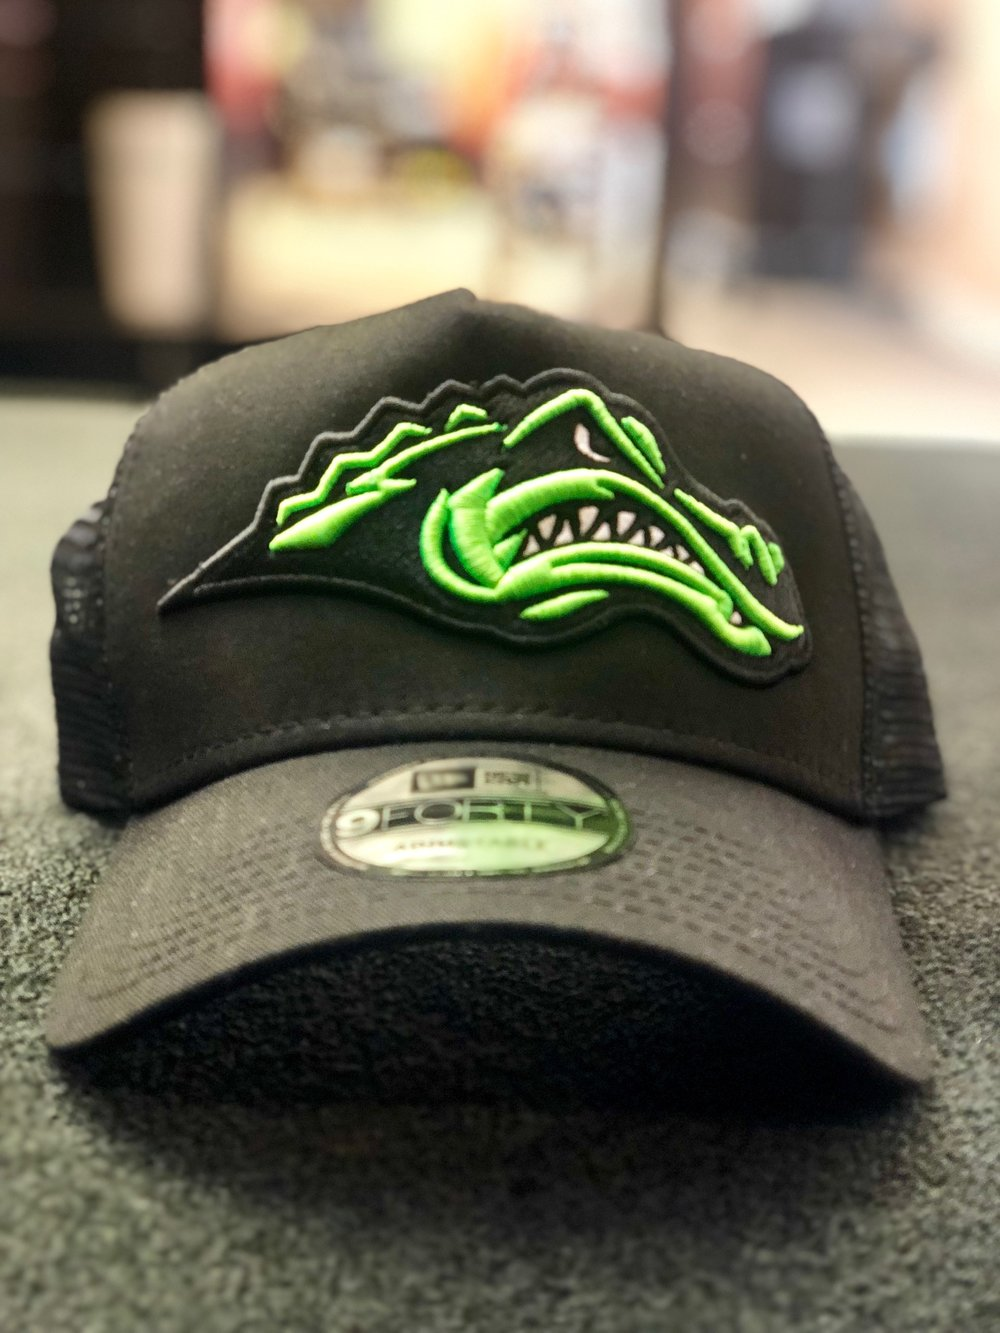 logounltd_laser_etching_embroidery_screen_printing_apparel_uniform_custom_tshirts_kirkland_bellevue_seattle_redmond_woodinville_branded_merchandise_promotional_products_logo_unltd_green_river_college_hat (1).jpg